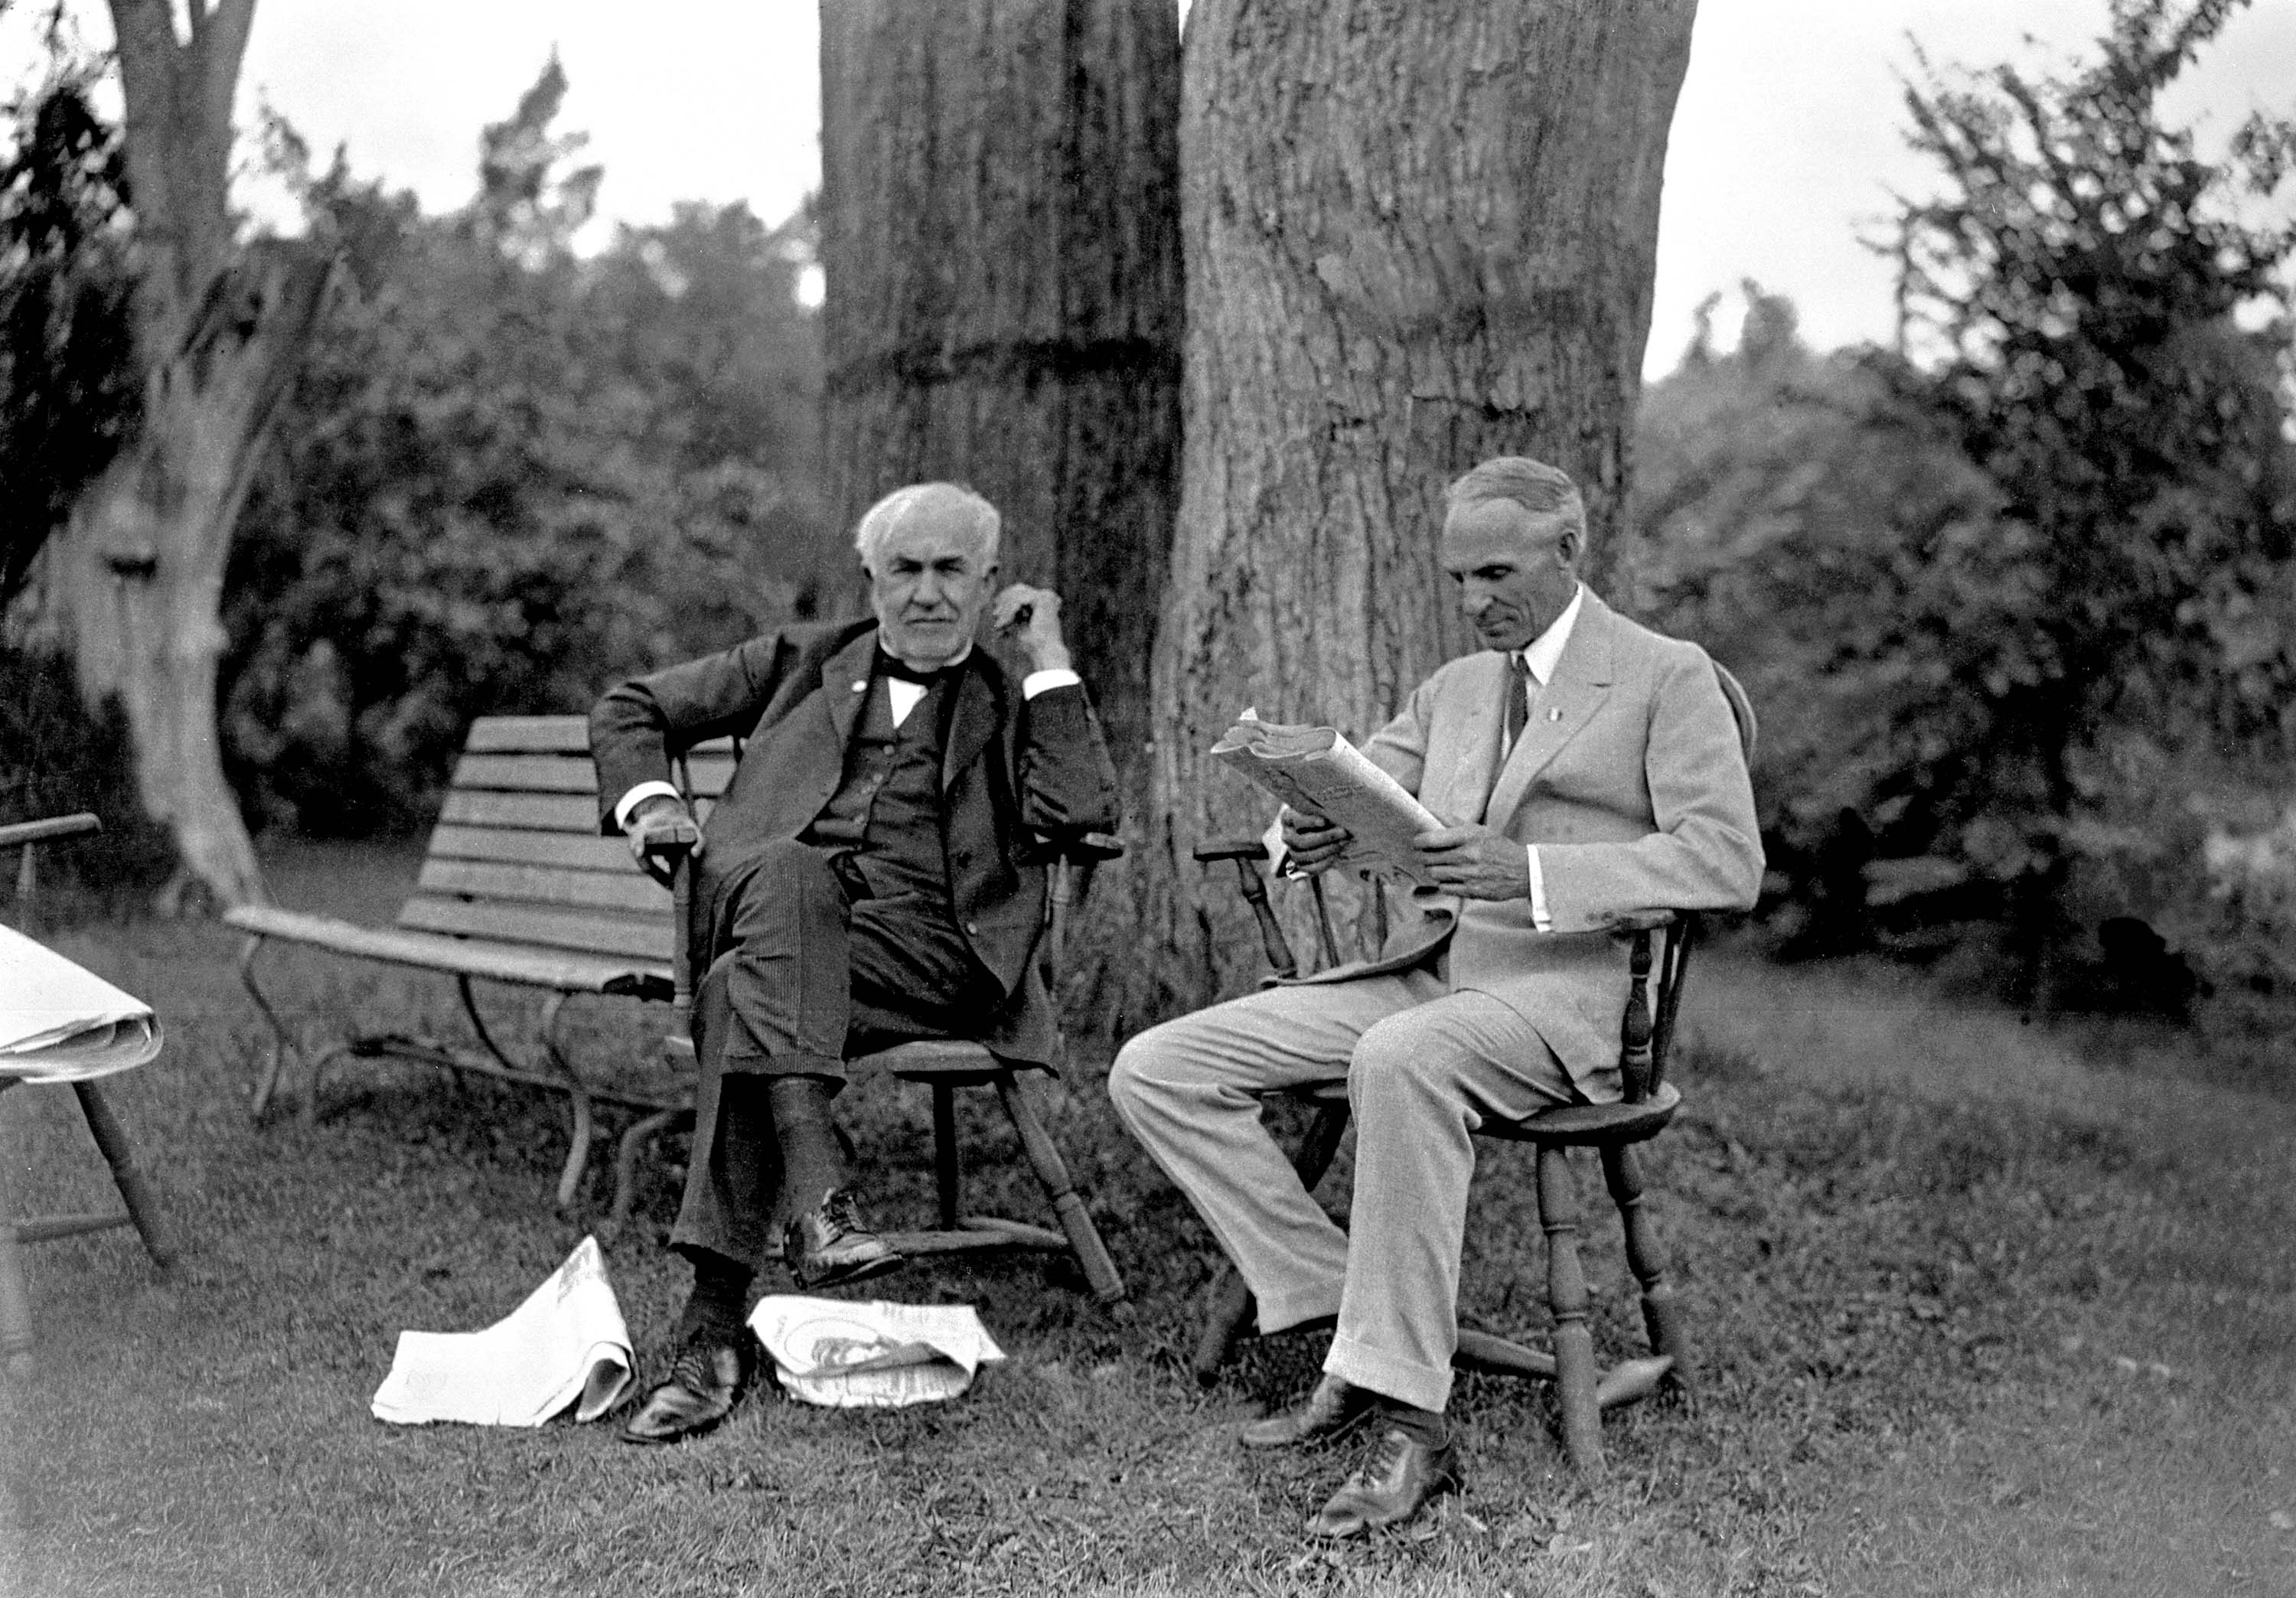 Thomas Edison & Henry Ford